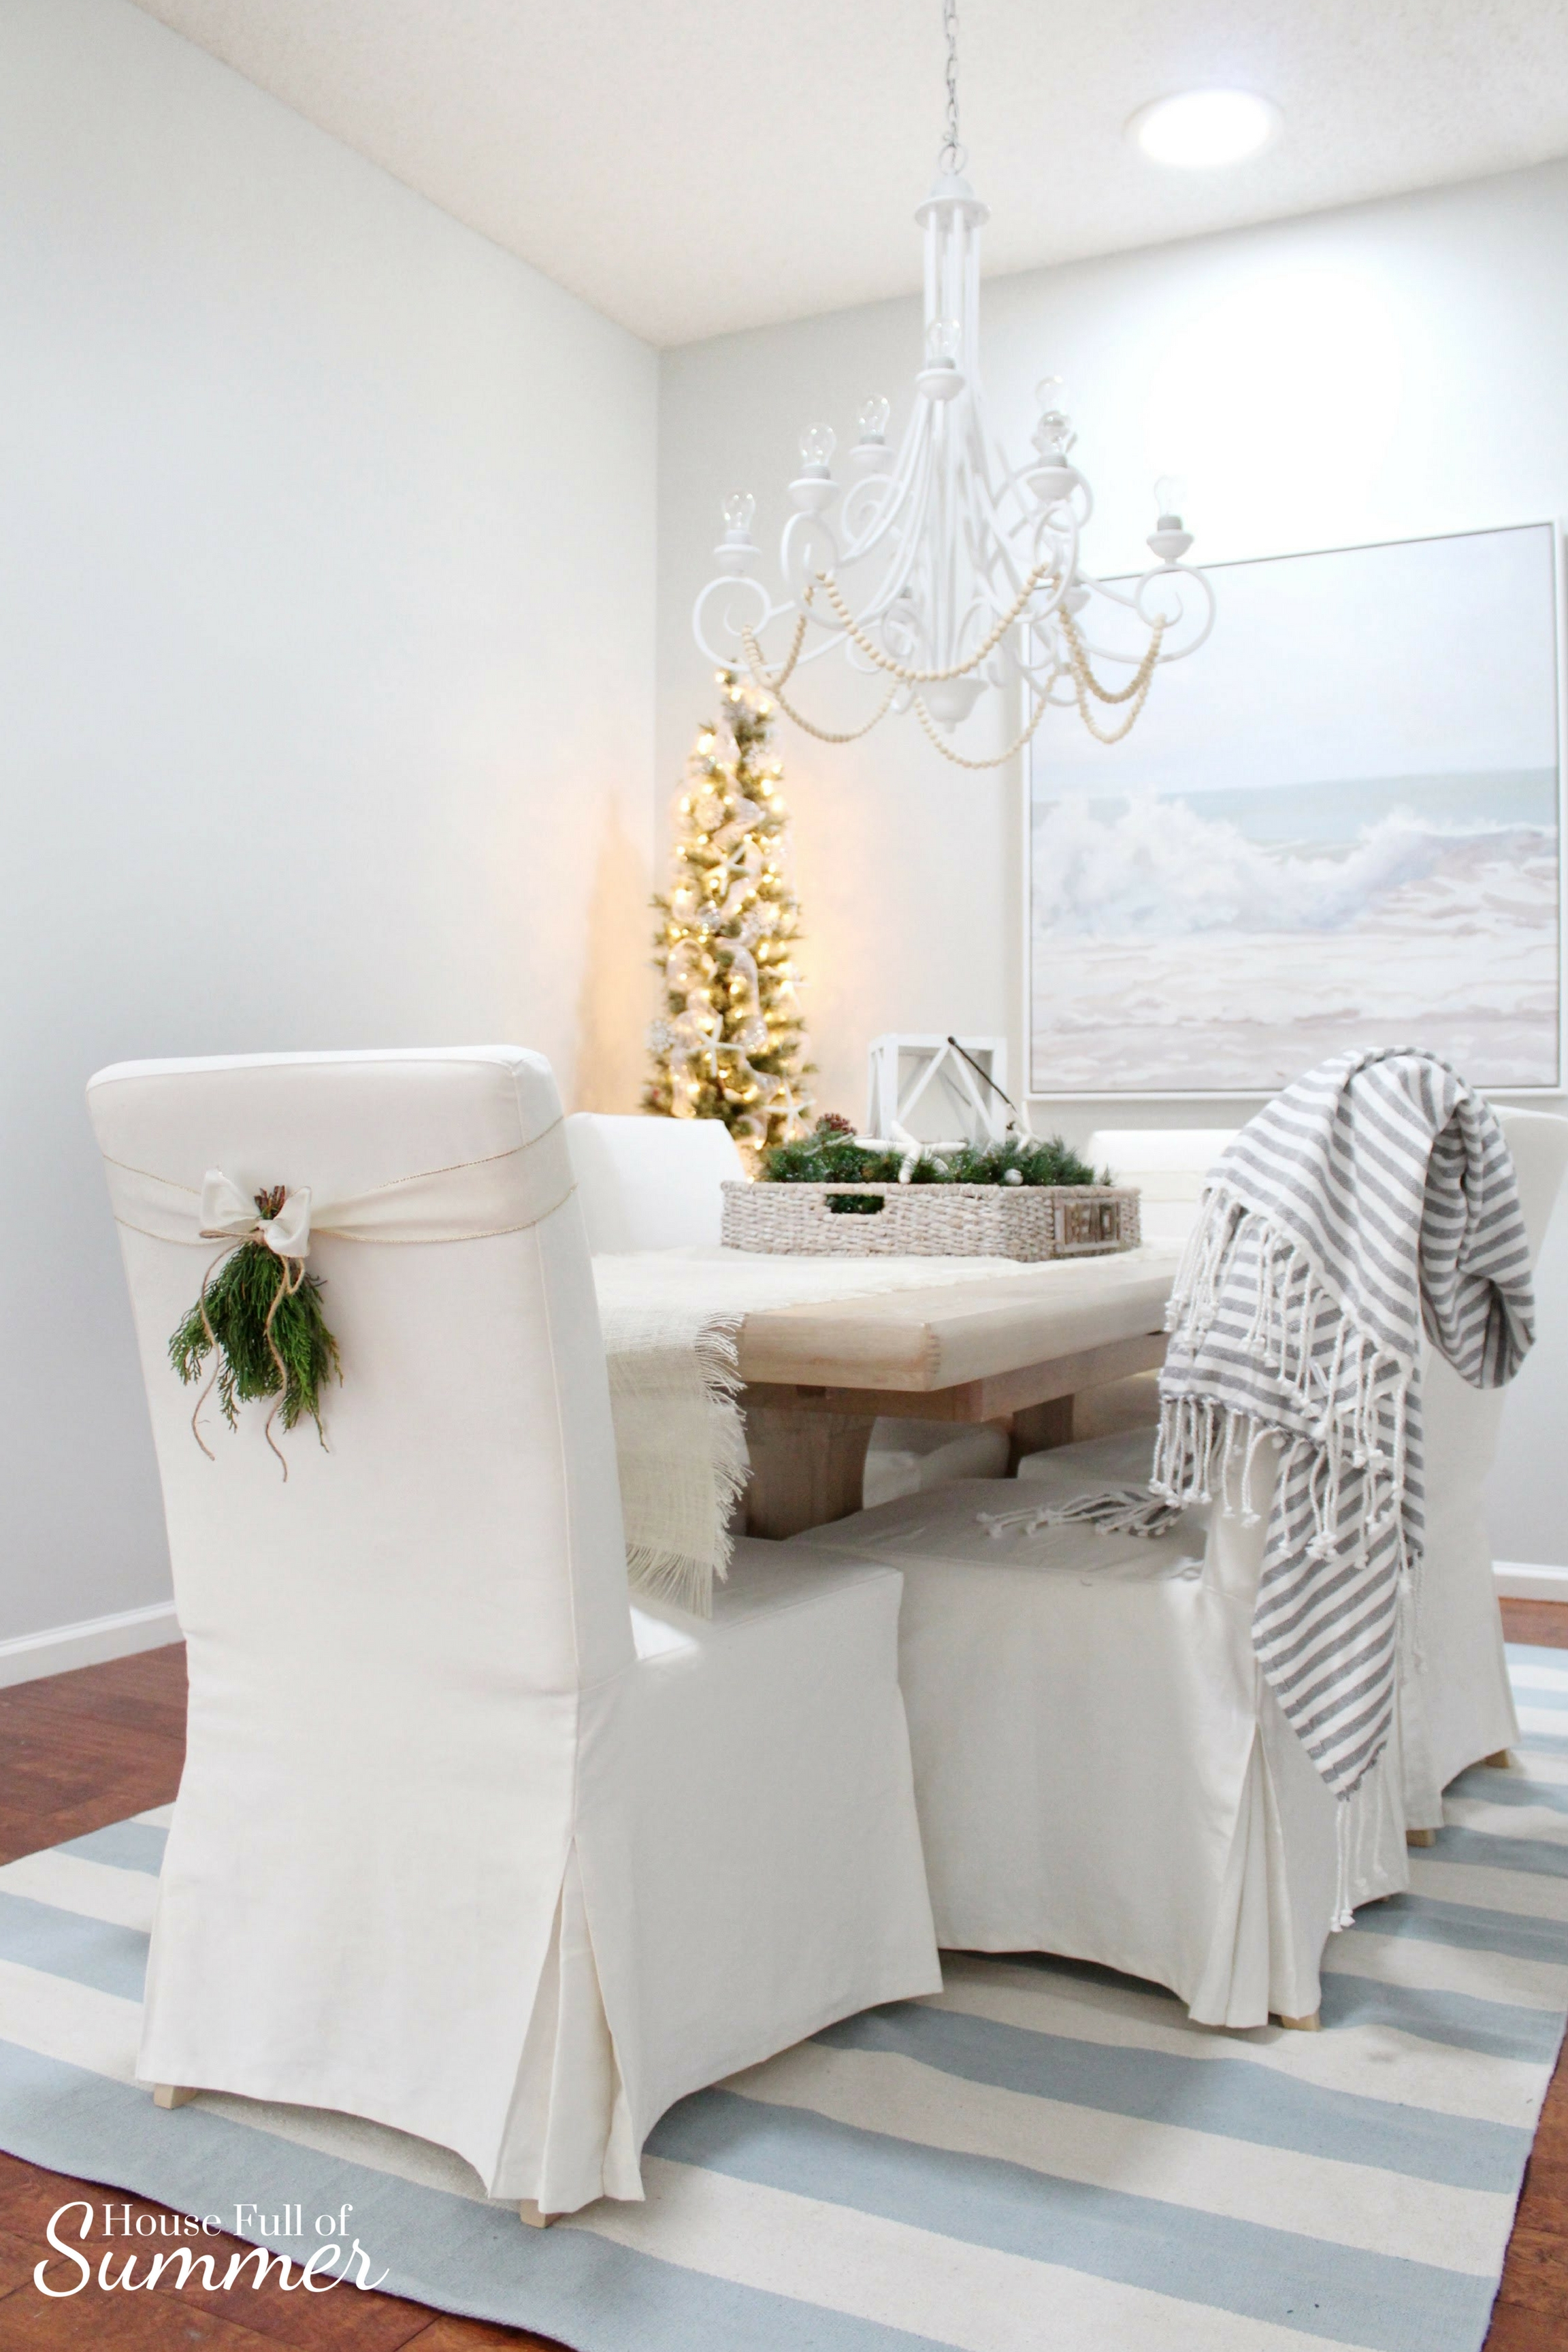 Christmas Home Tour | House Full of Summer blog hop - Cheerful Christmas Home Tourcoastal christmas neutral christmas decor, holiday home tour, florida christmas, white dining room, chair swag, christmas centerpiece, white chandelier, pencil tree, blue and white coastal Christmas decor, neutral coastal decor, beachy Christmas dining room